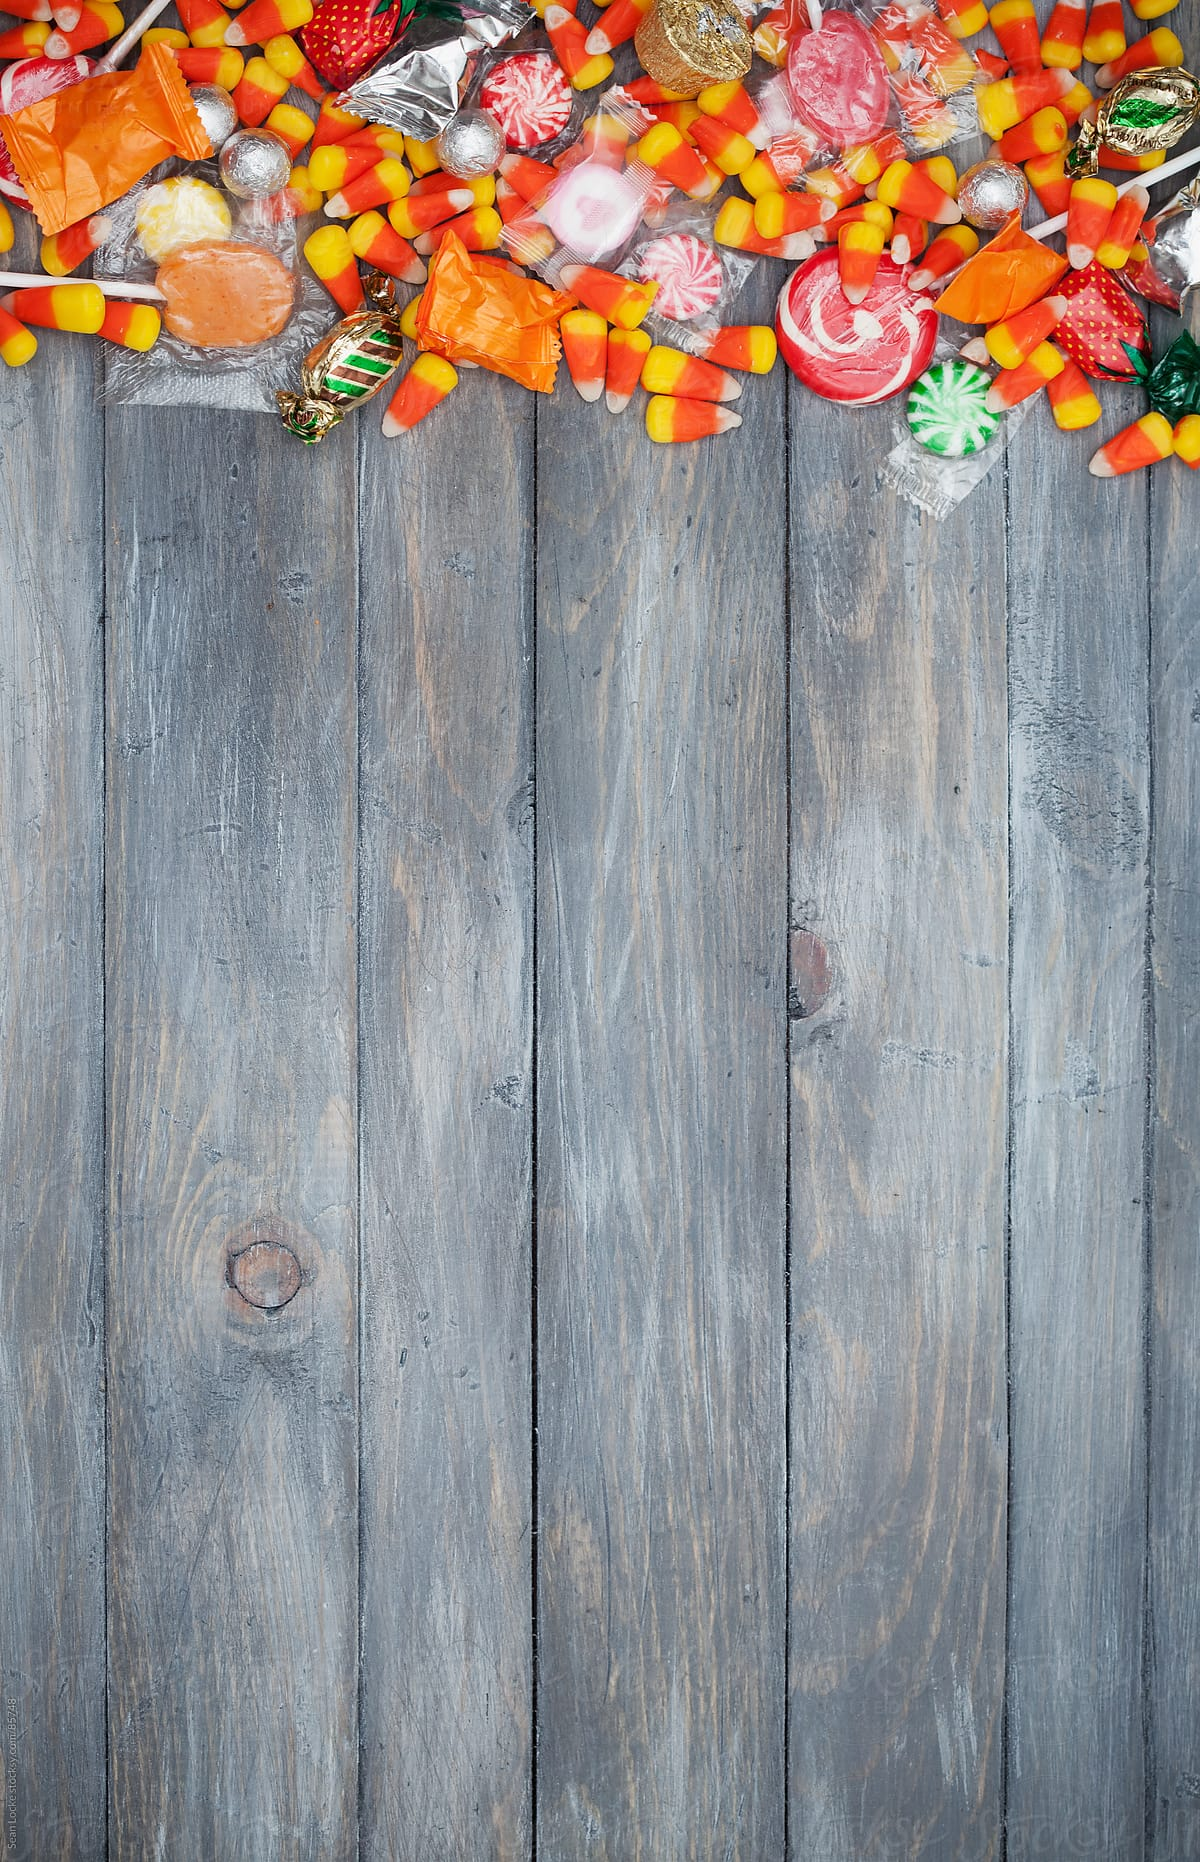 Fall Wallpaper And Screensavers For Free Halloween Halloween Candy Border Background Stocksy United